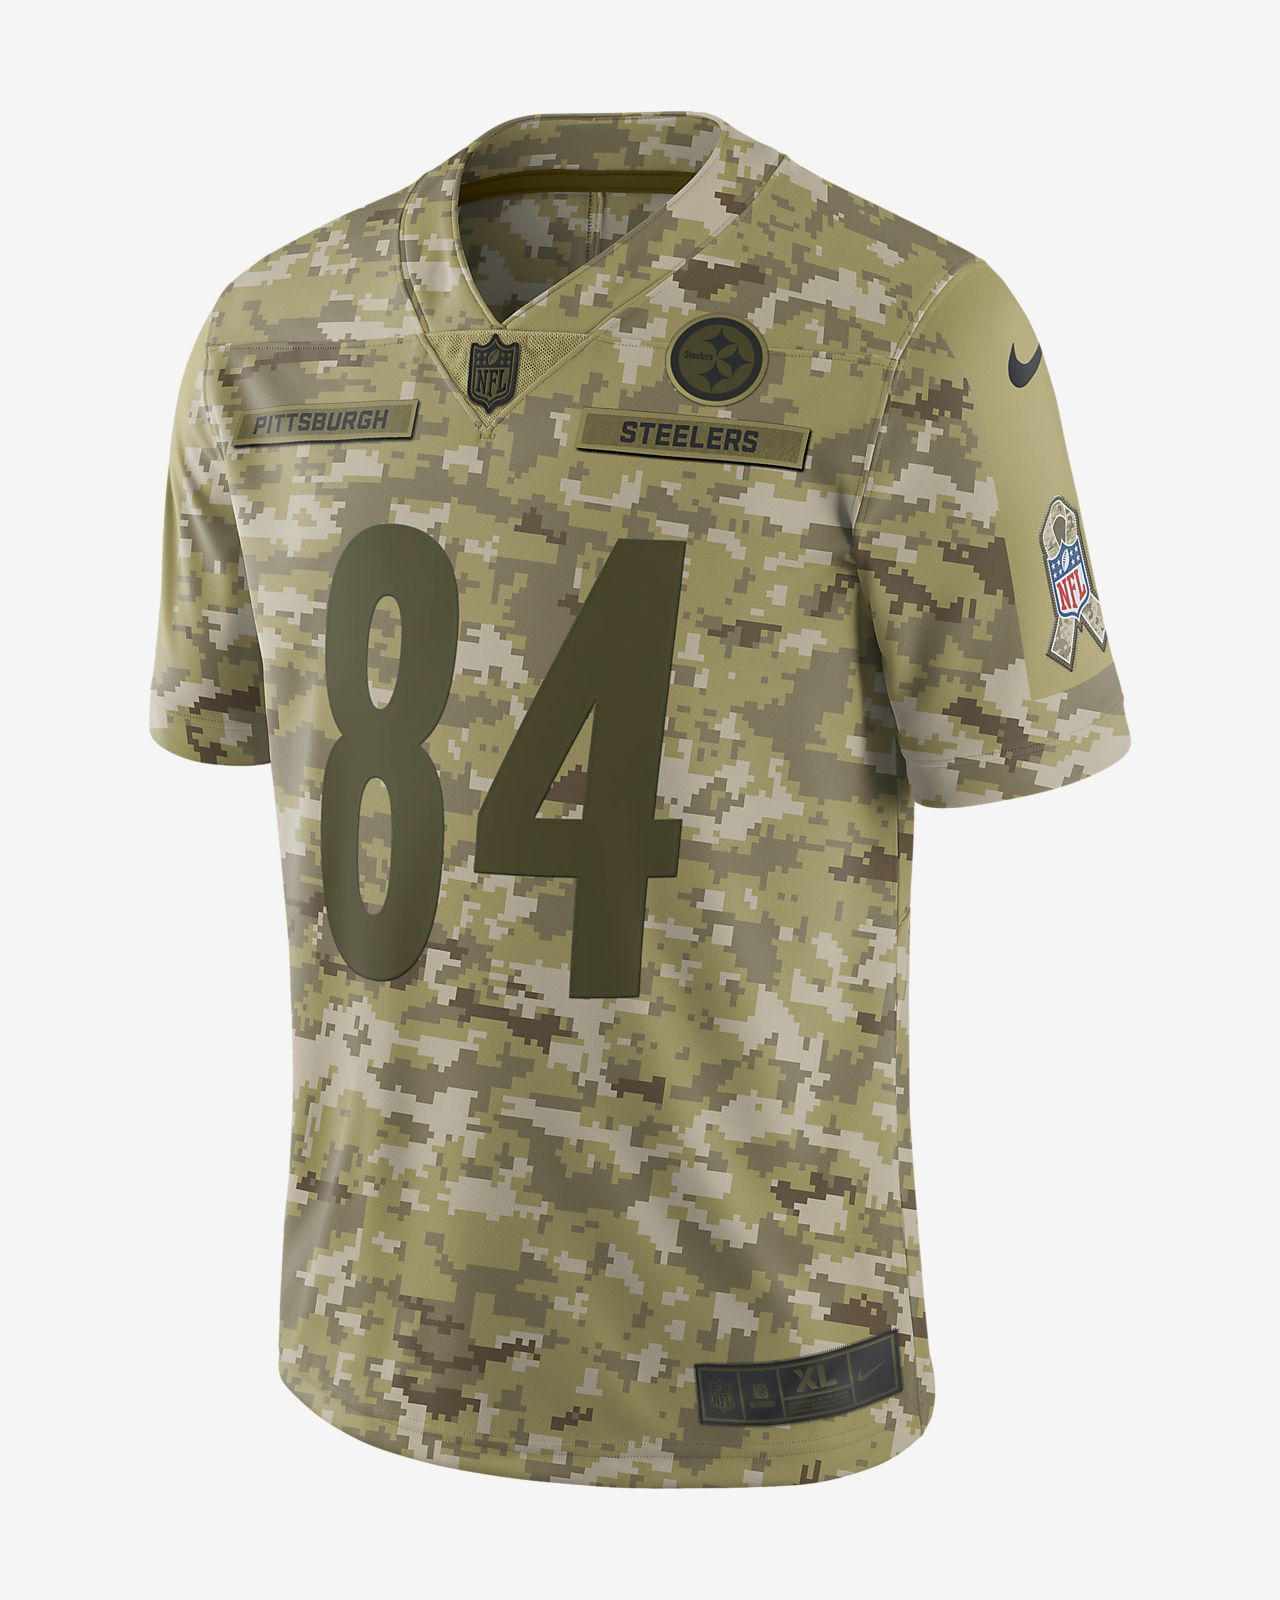 ... australia nfl pittsburgh steelers salute to service limited jersey  antonio brown mens football jersey 02bab ad051 cf163414a